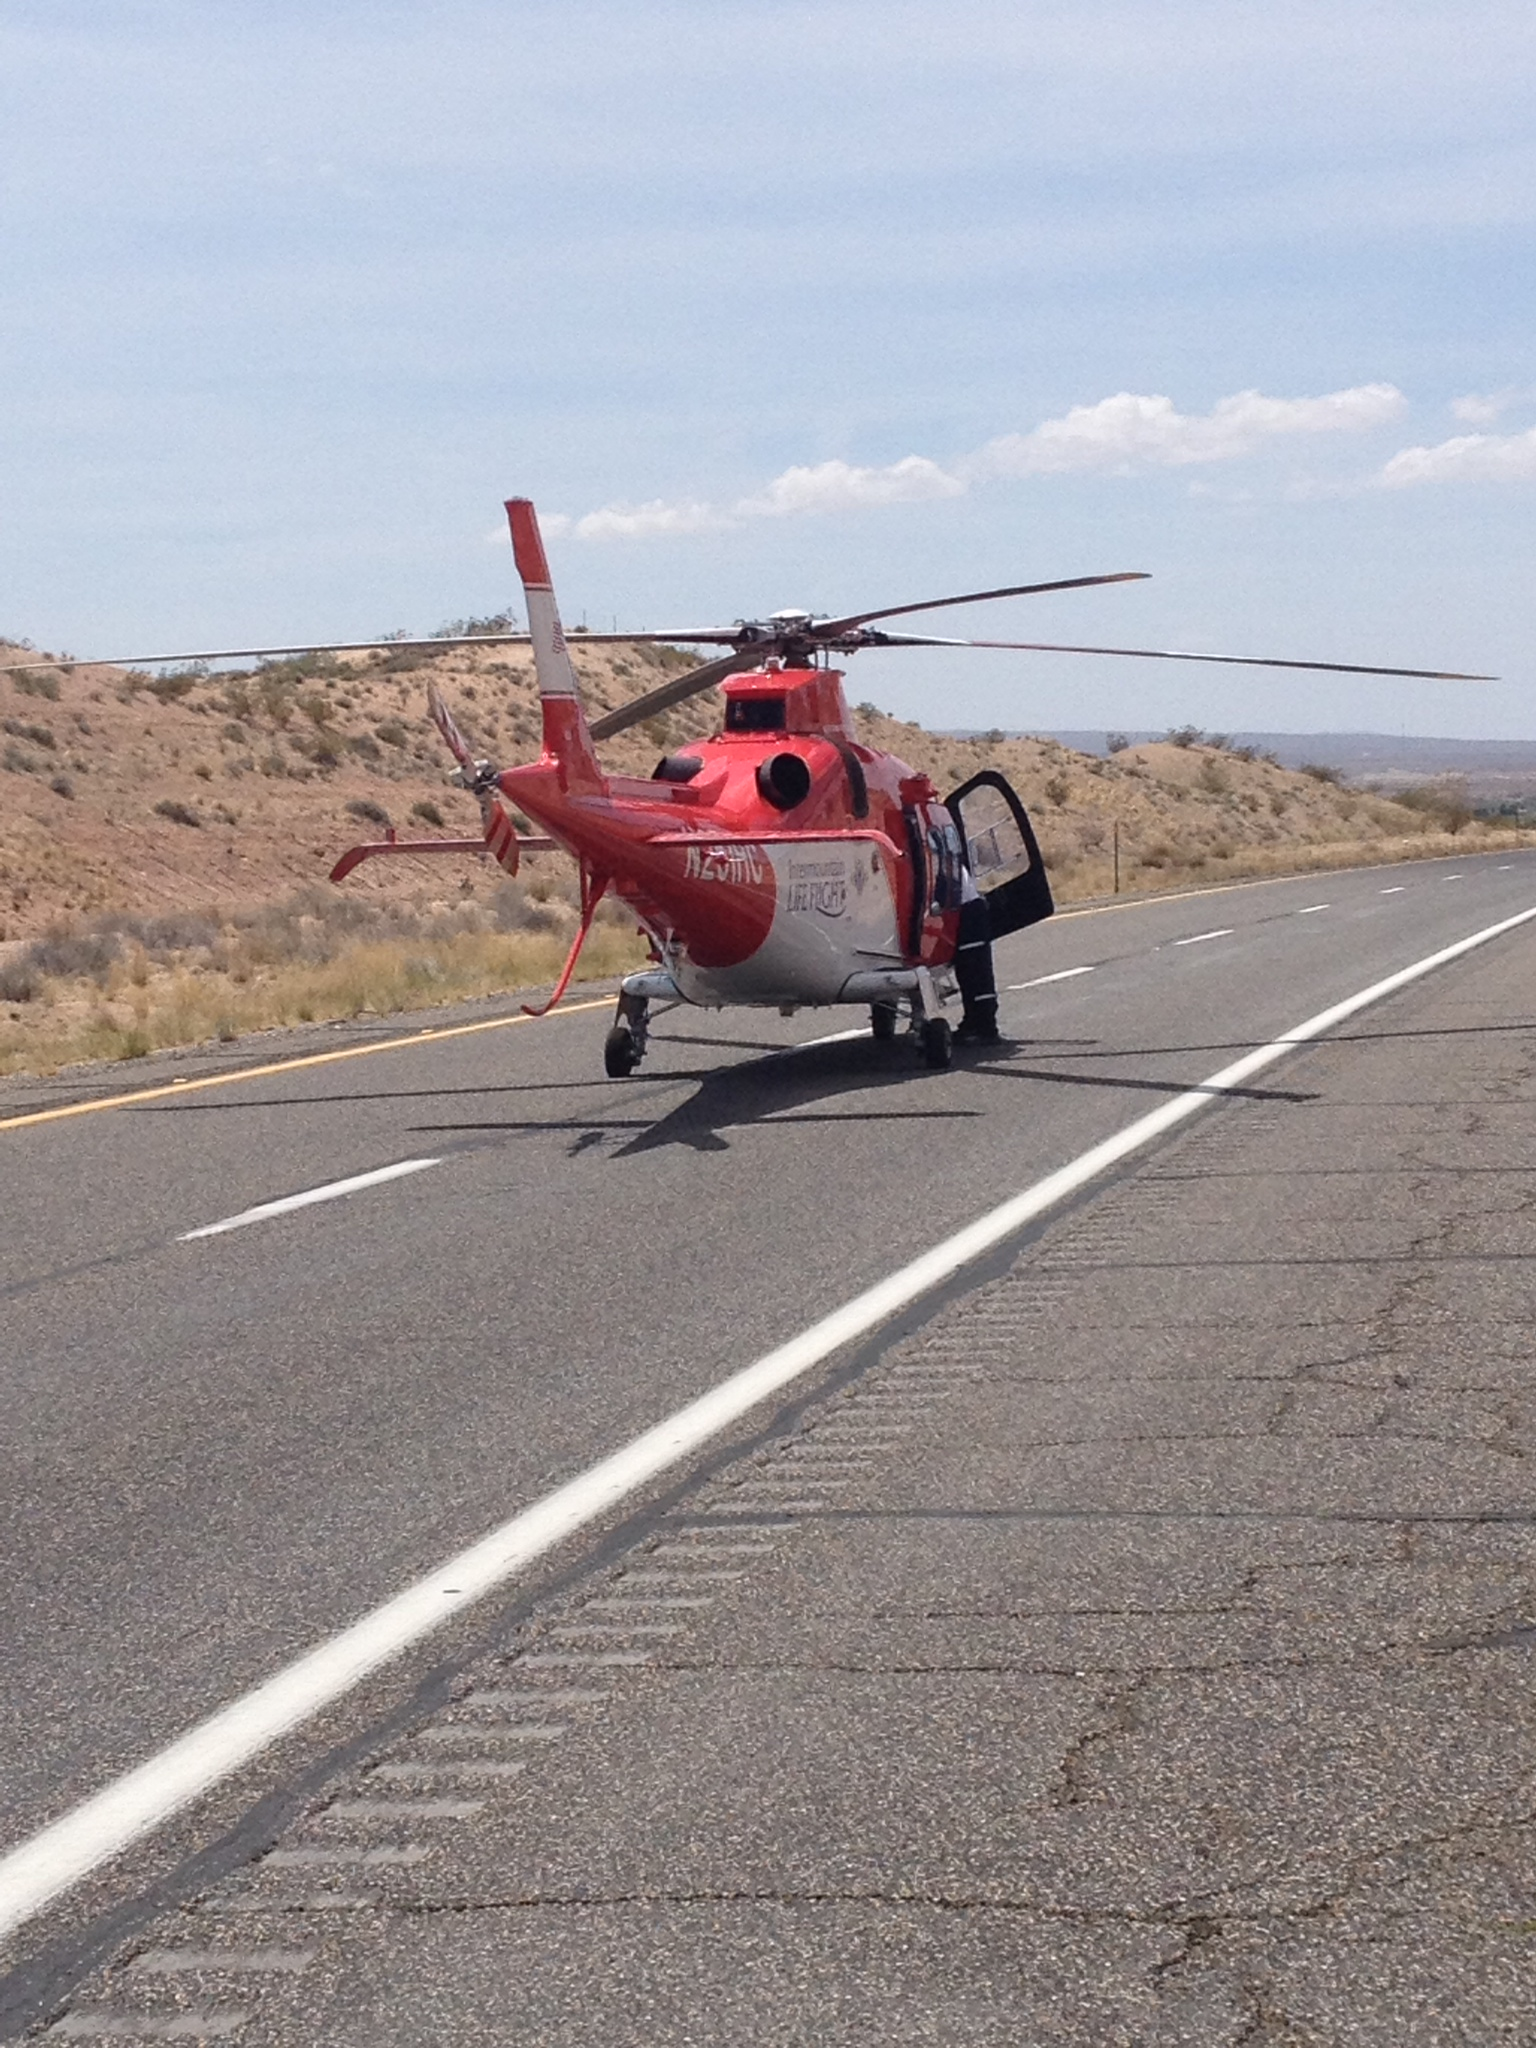 A man was transported to the hospital via Life Flight after a rollover on southbound Interstate 15 about 2 miles north of Mesquite, Nevada, May 13, 2015 | Photo courtesy of Arizona Department of Public Safety Sgt. John T. Bottoms, St. George News